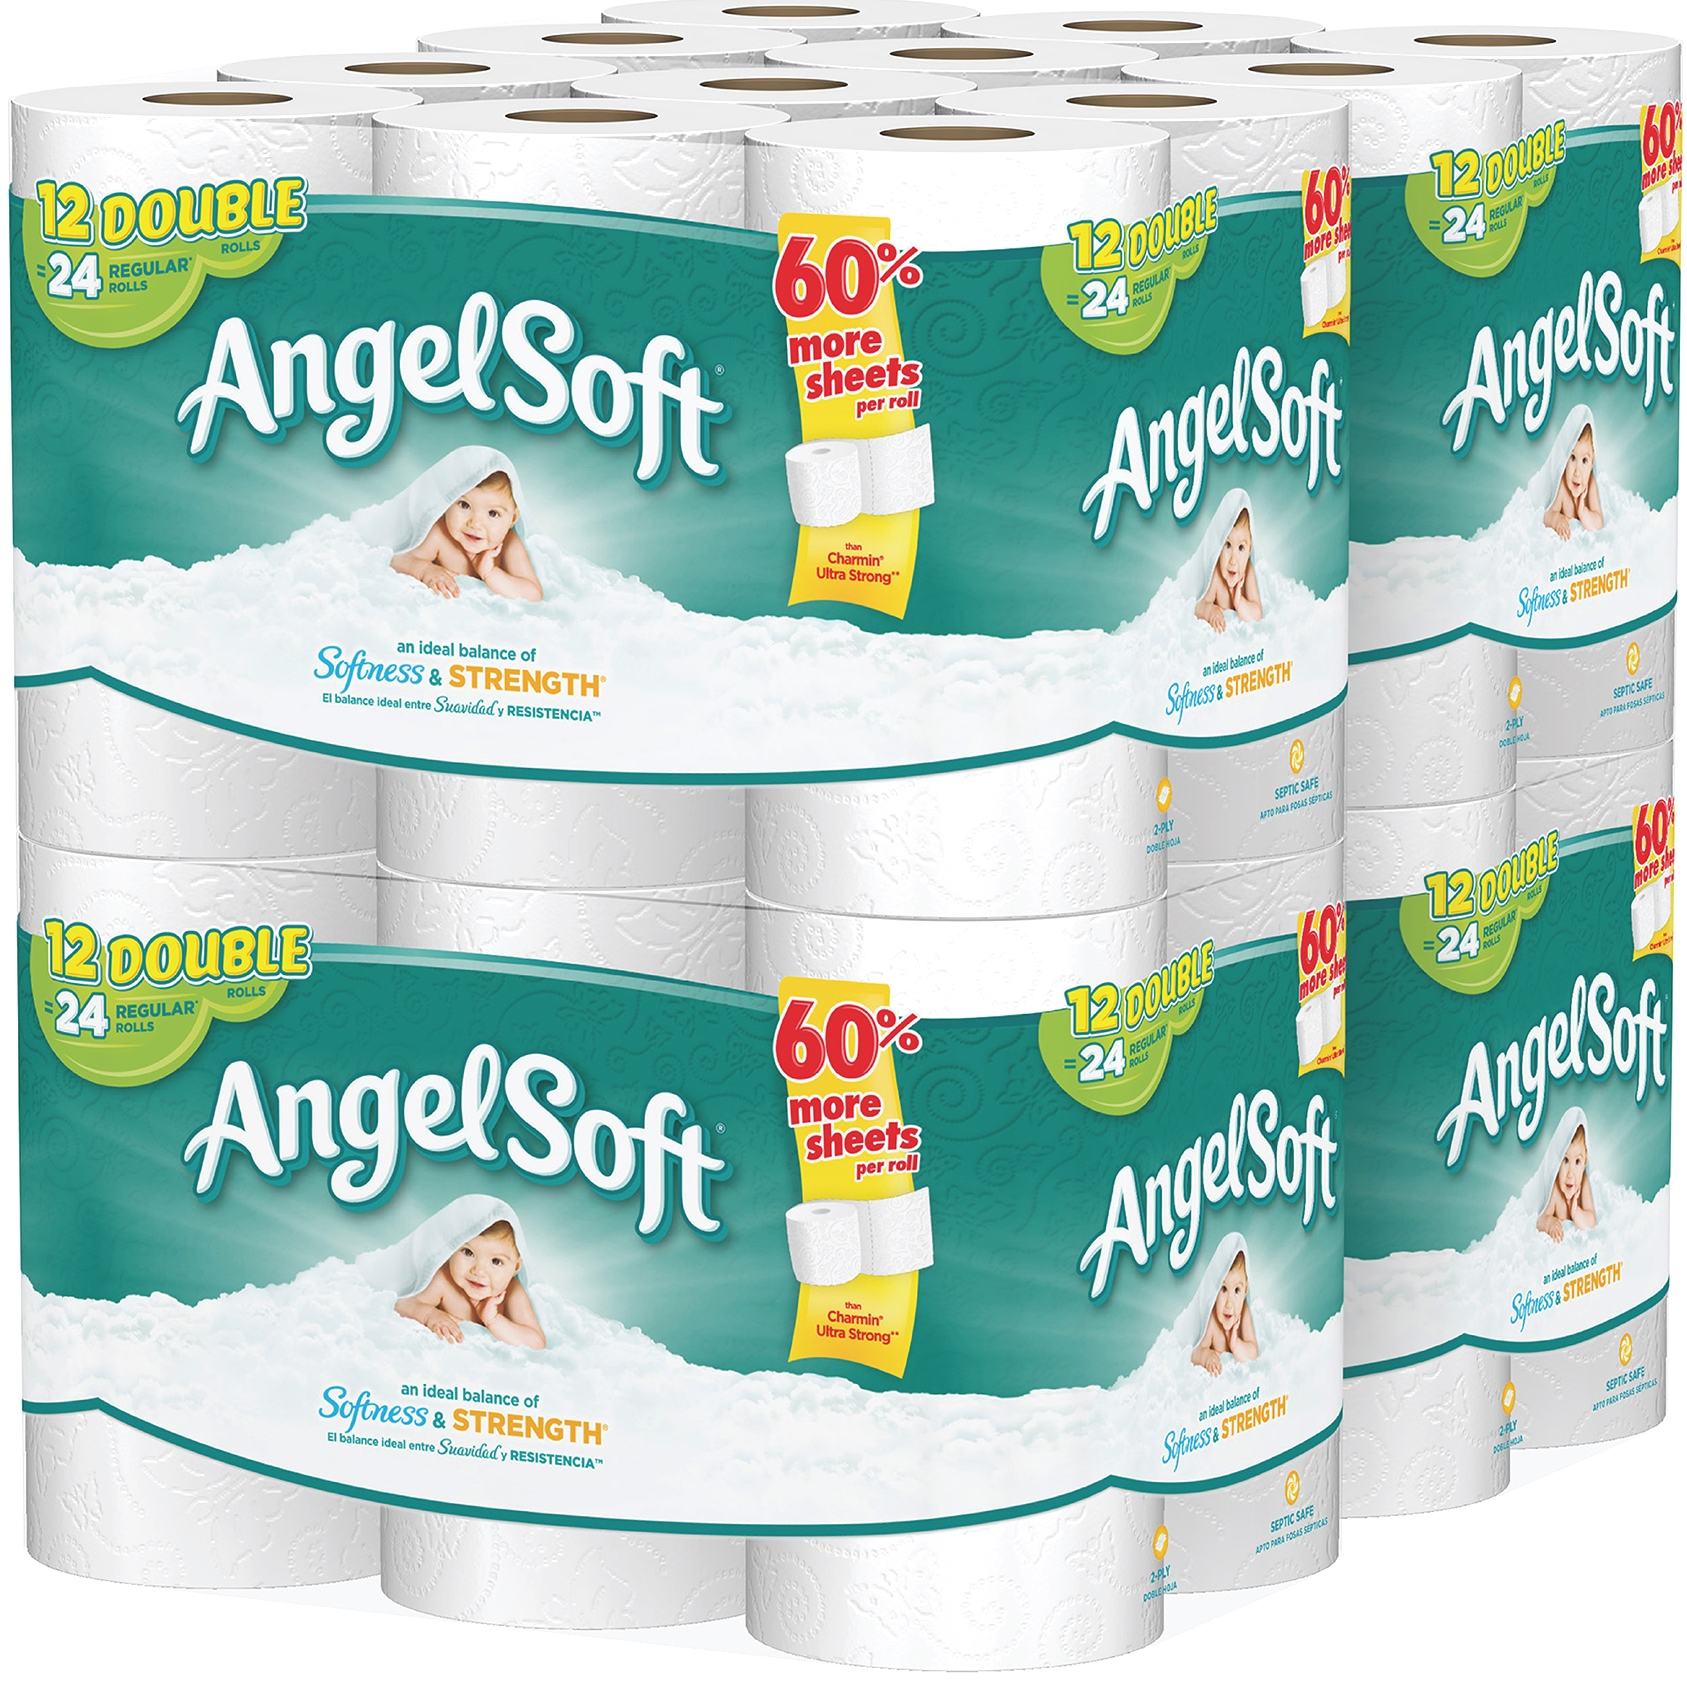 Angel Soft Toilet Paper, 48 Double Rolls